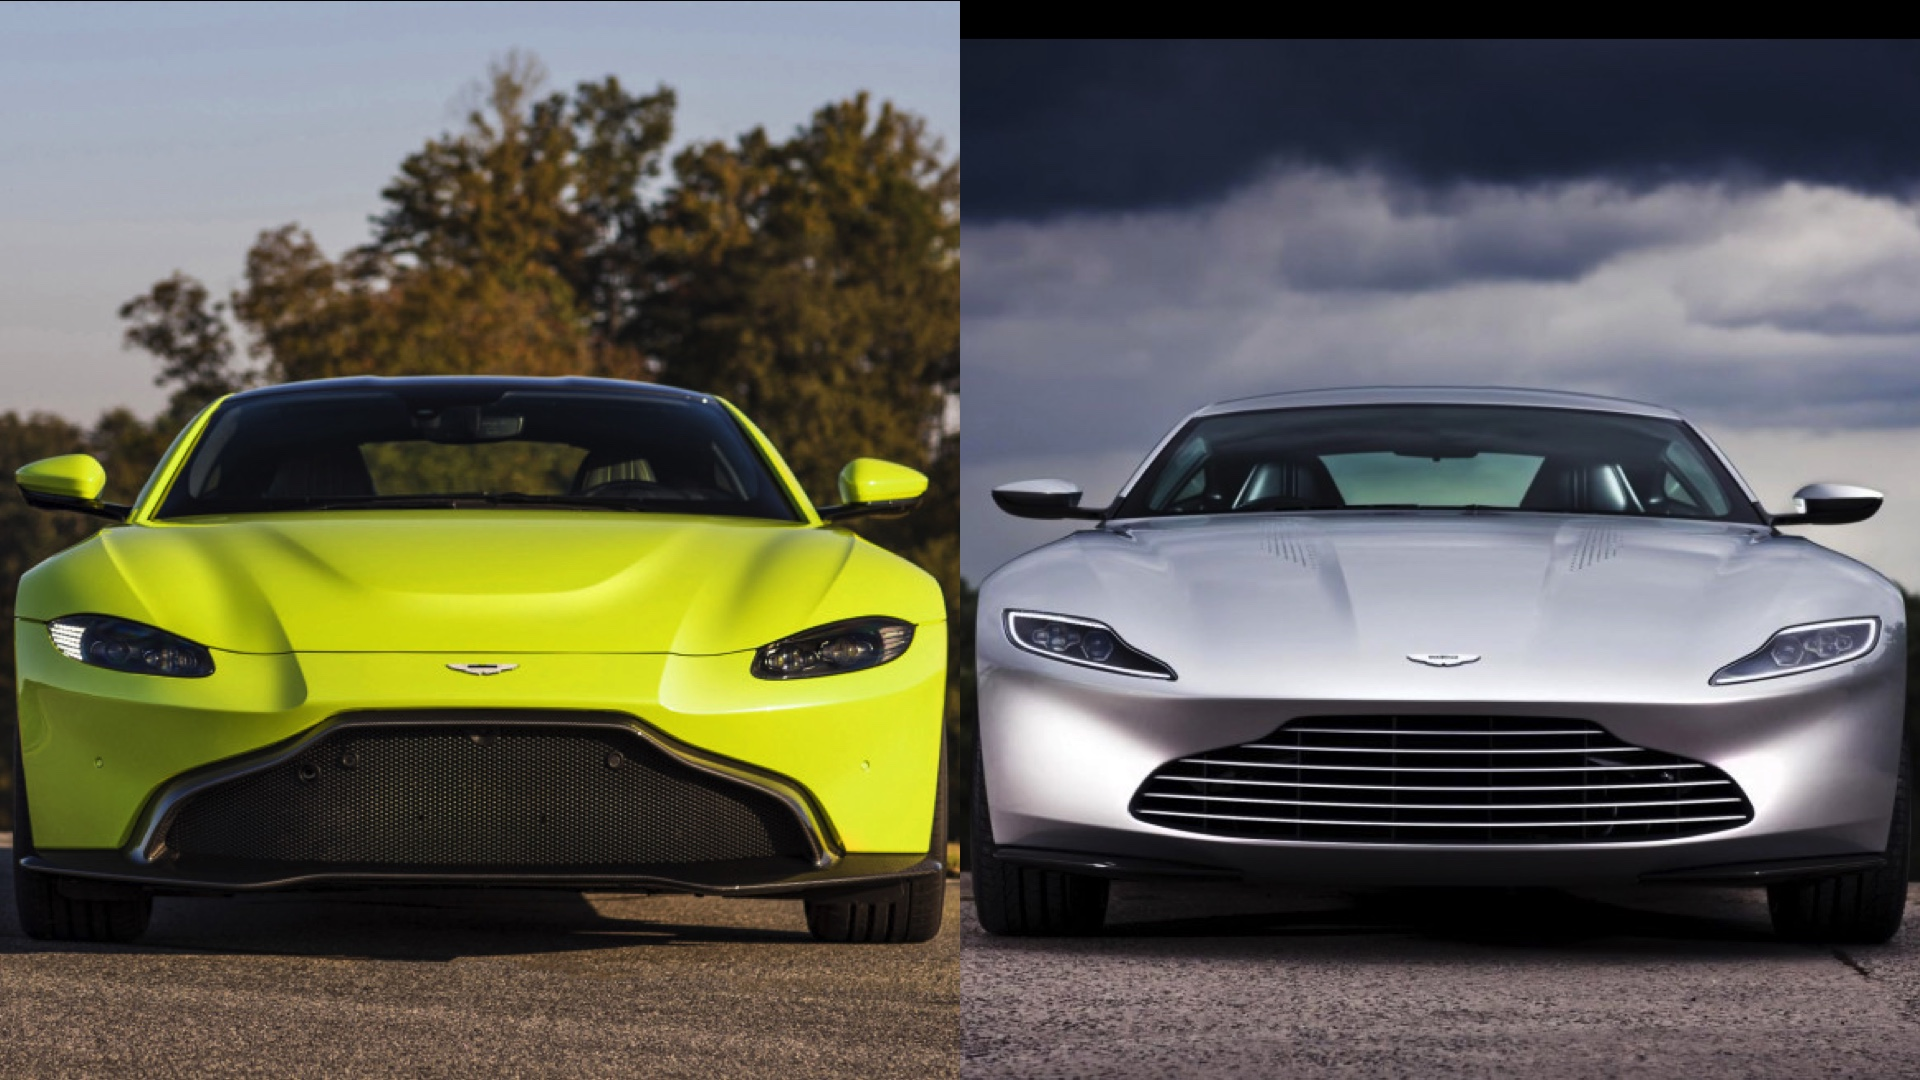 james bond 39 s aston martin db10 was based off the 2019 vantage. Black Bedroom Furniture Sets. Home Design Ideas